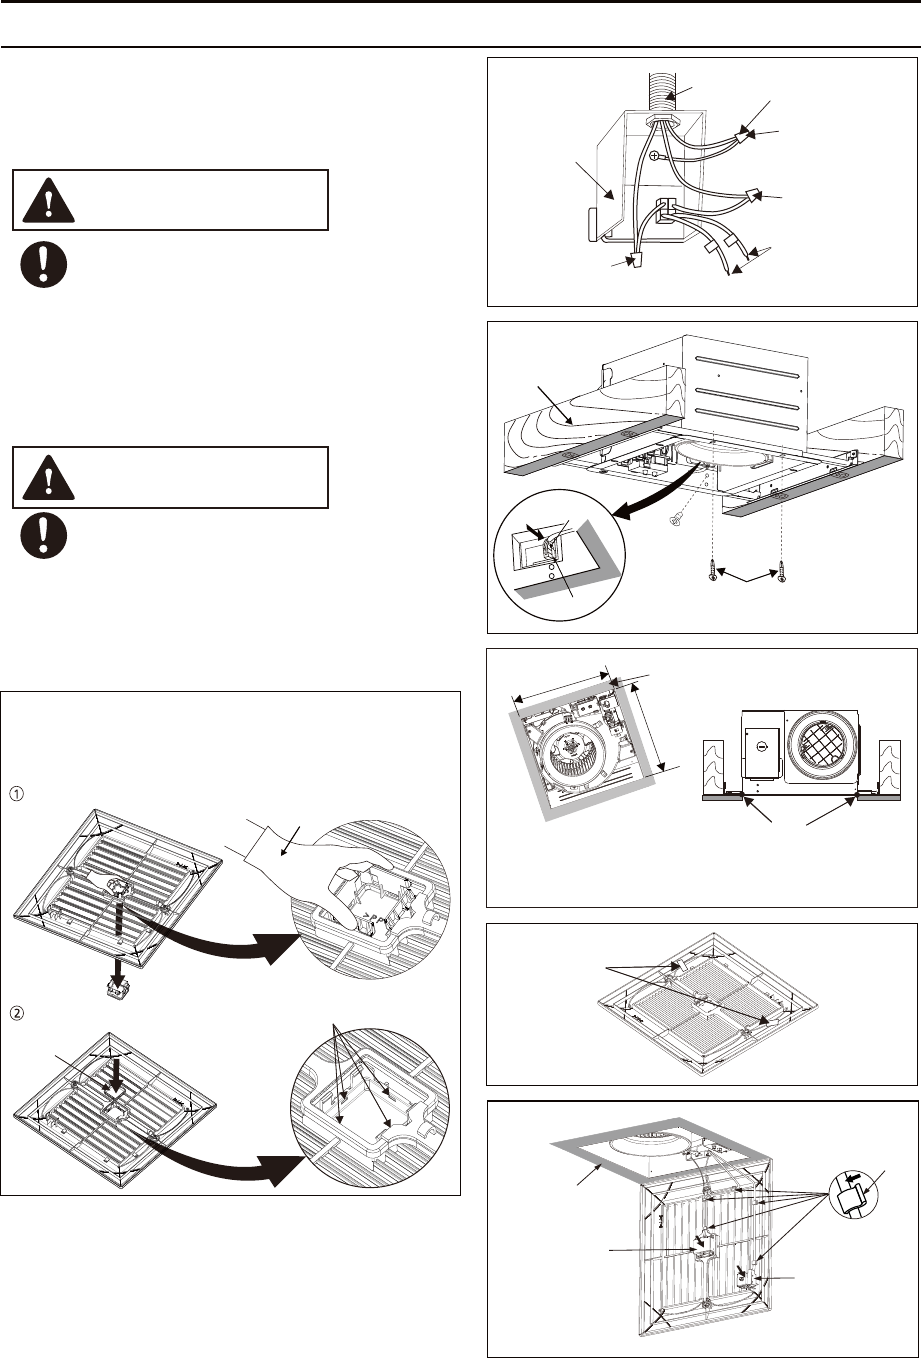 a5e7c185 db07 44b0 8192 6fe2fb022d7f bg9 page 9 of panasonic ventilation hood fv 05 11vk1 user guide panasonic fv-05-11vk1 wiring diagram at gsmx.co